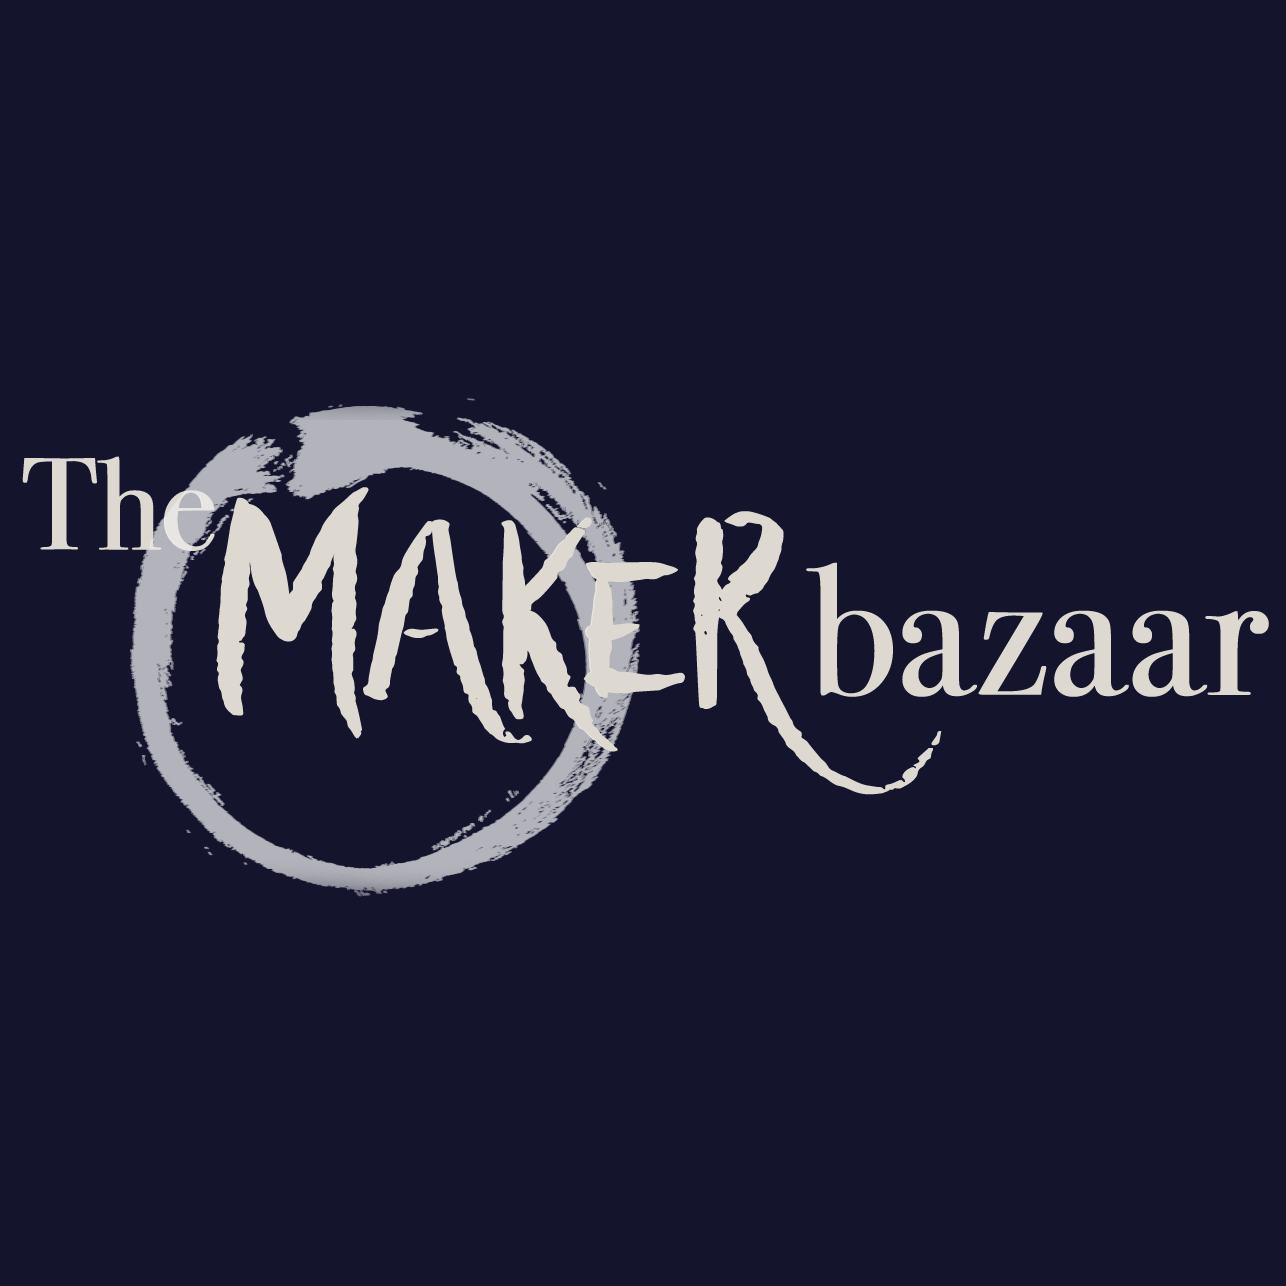 The Maker Bazaar